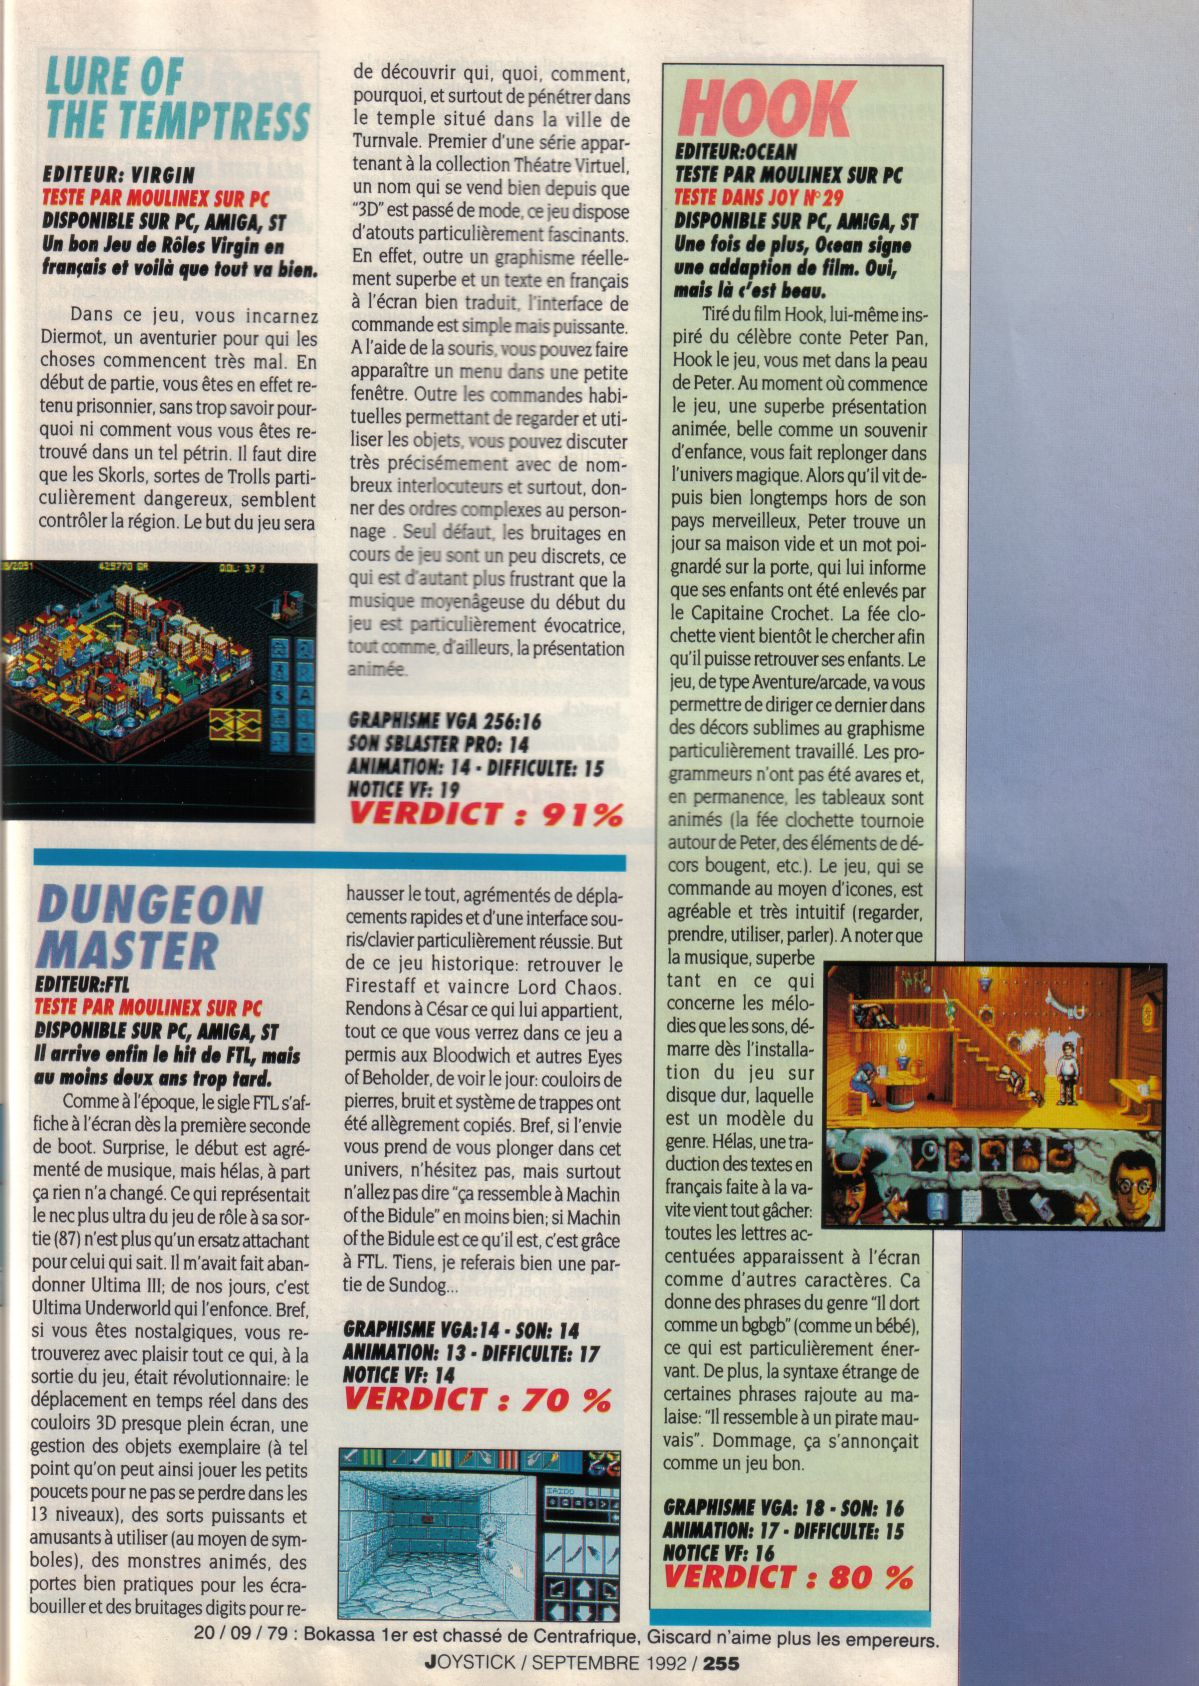 Dungeon Master for PC Review published in French magazine 'Joystick', Issue #30, September 1992, Page 255